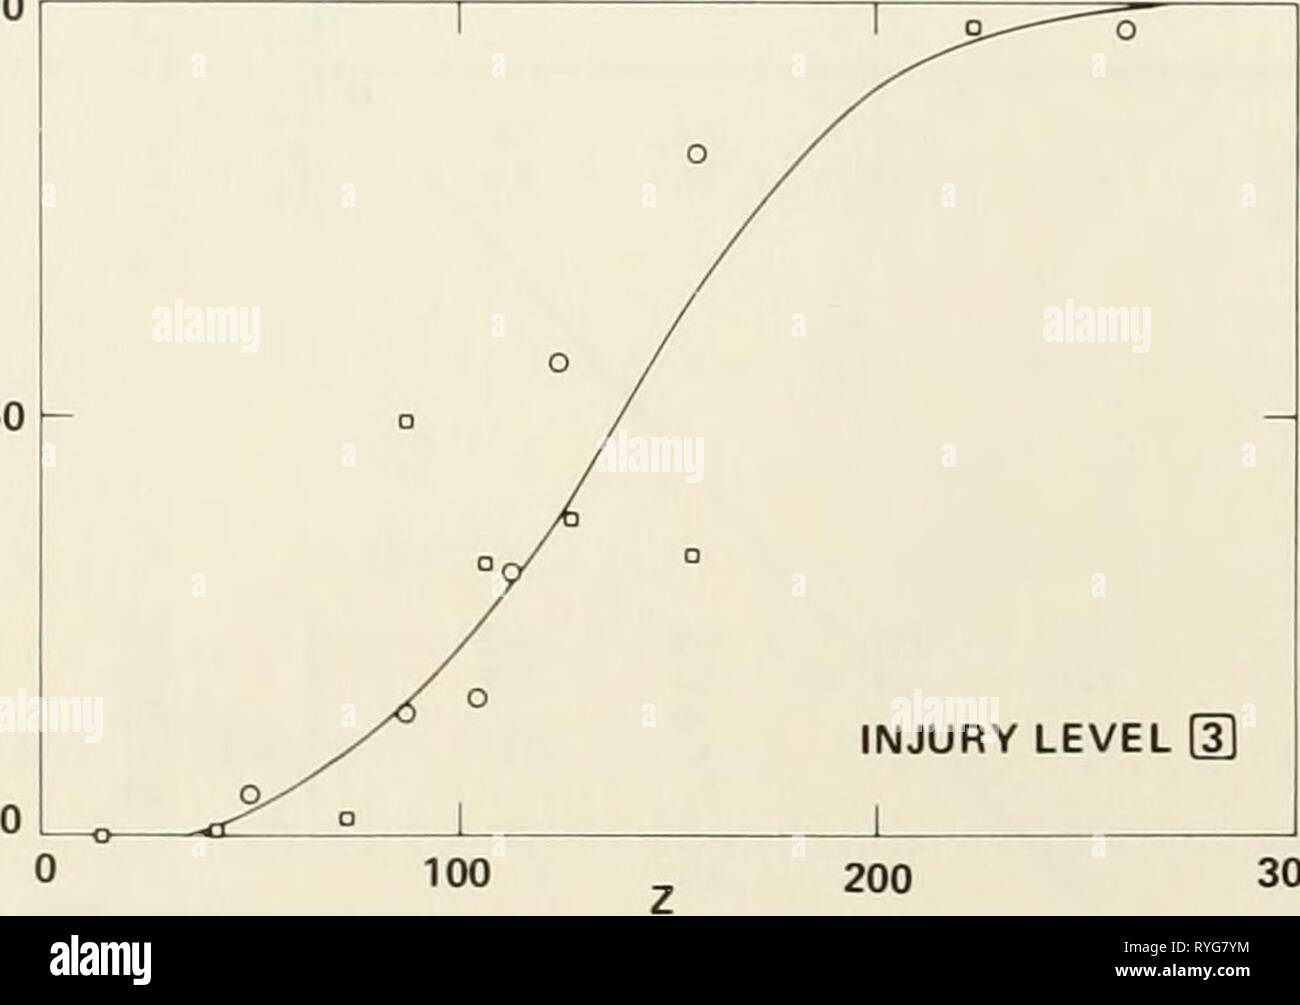 Dynamical model for explosion injury - Stock Image